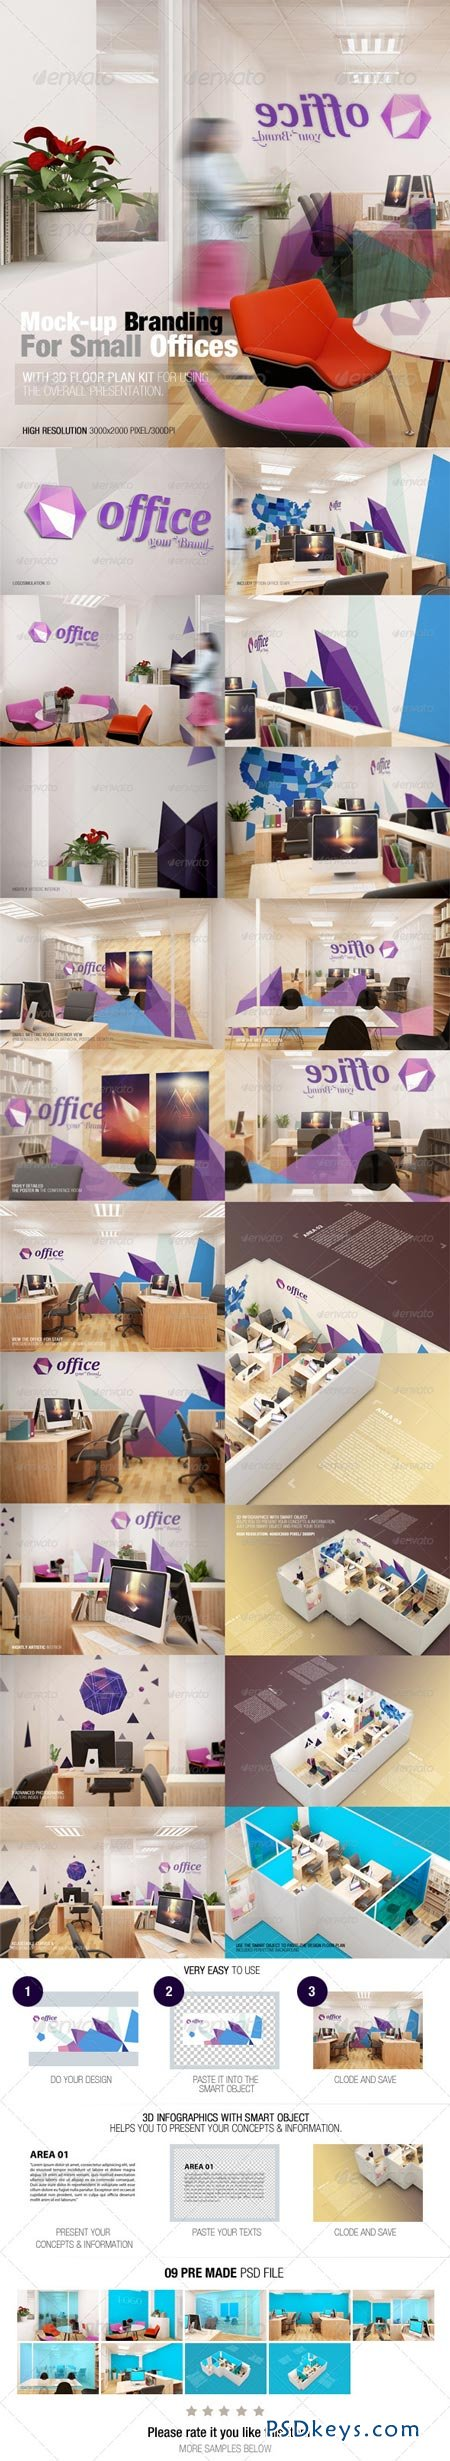 Mockup Branding For Small Offices 7688046